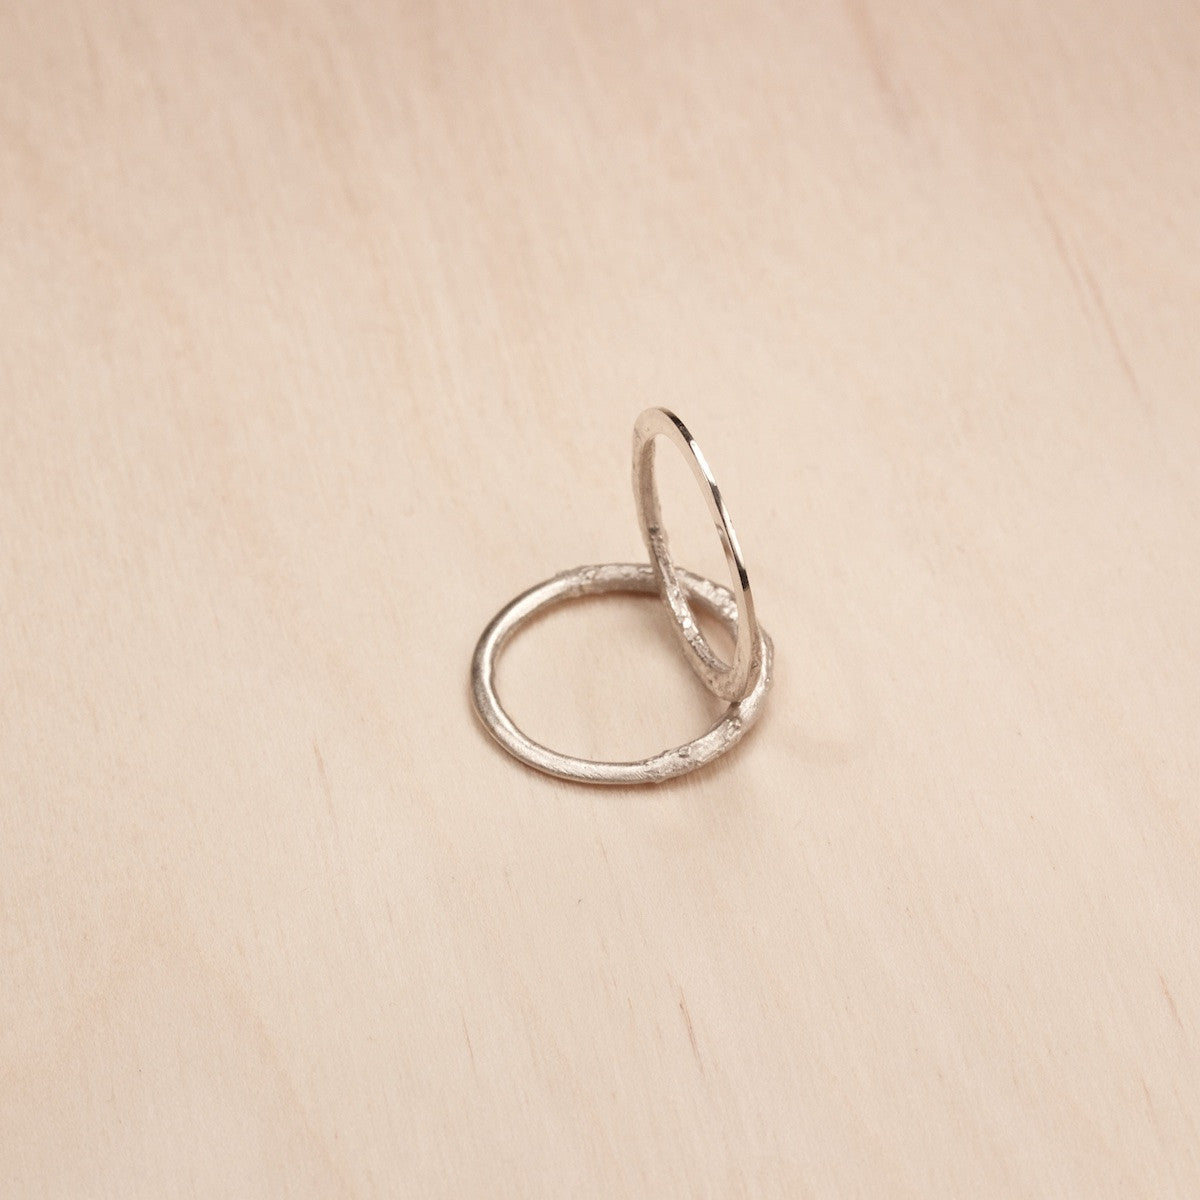 'Clay Lilite' Fairtrade silver/ gold ring